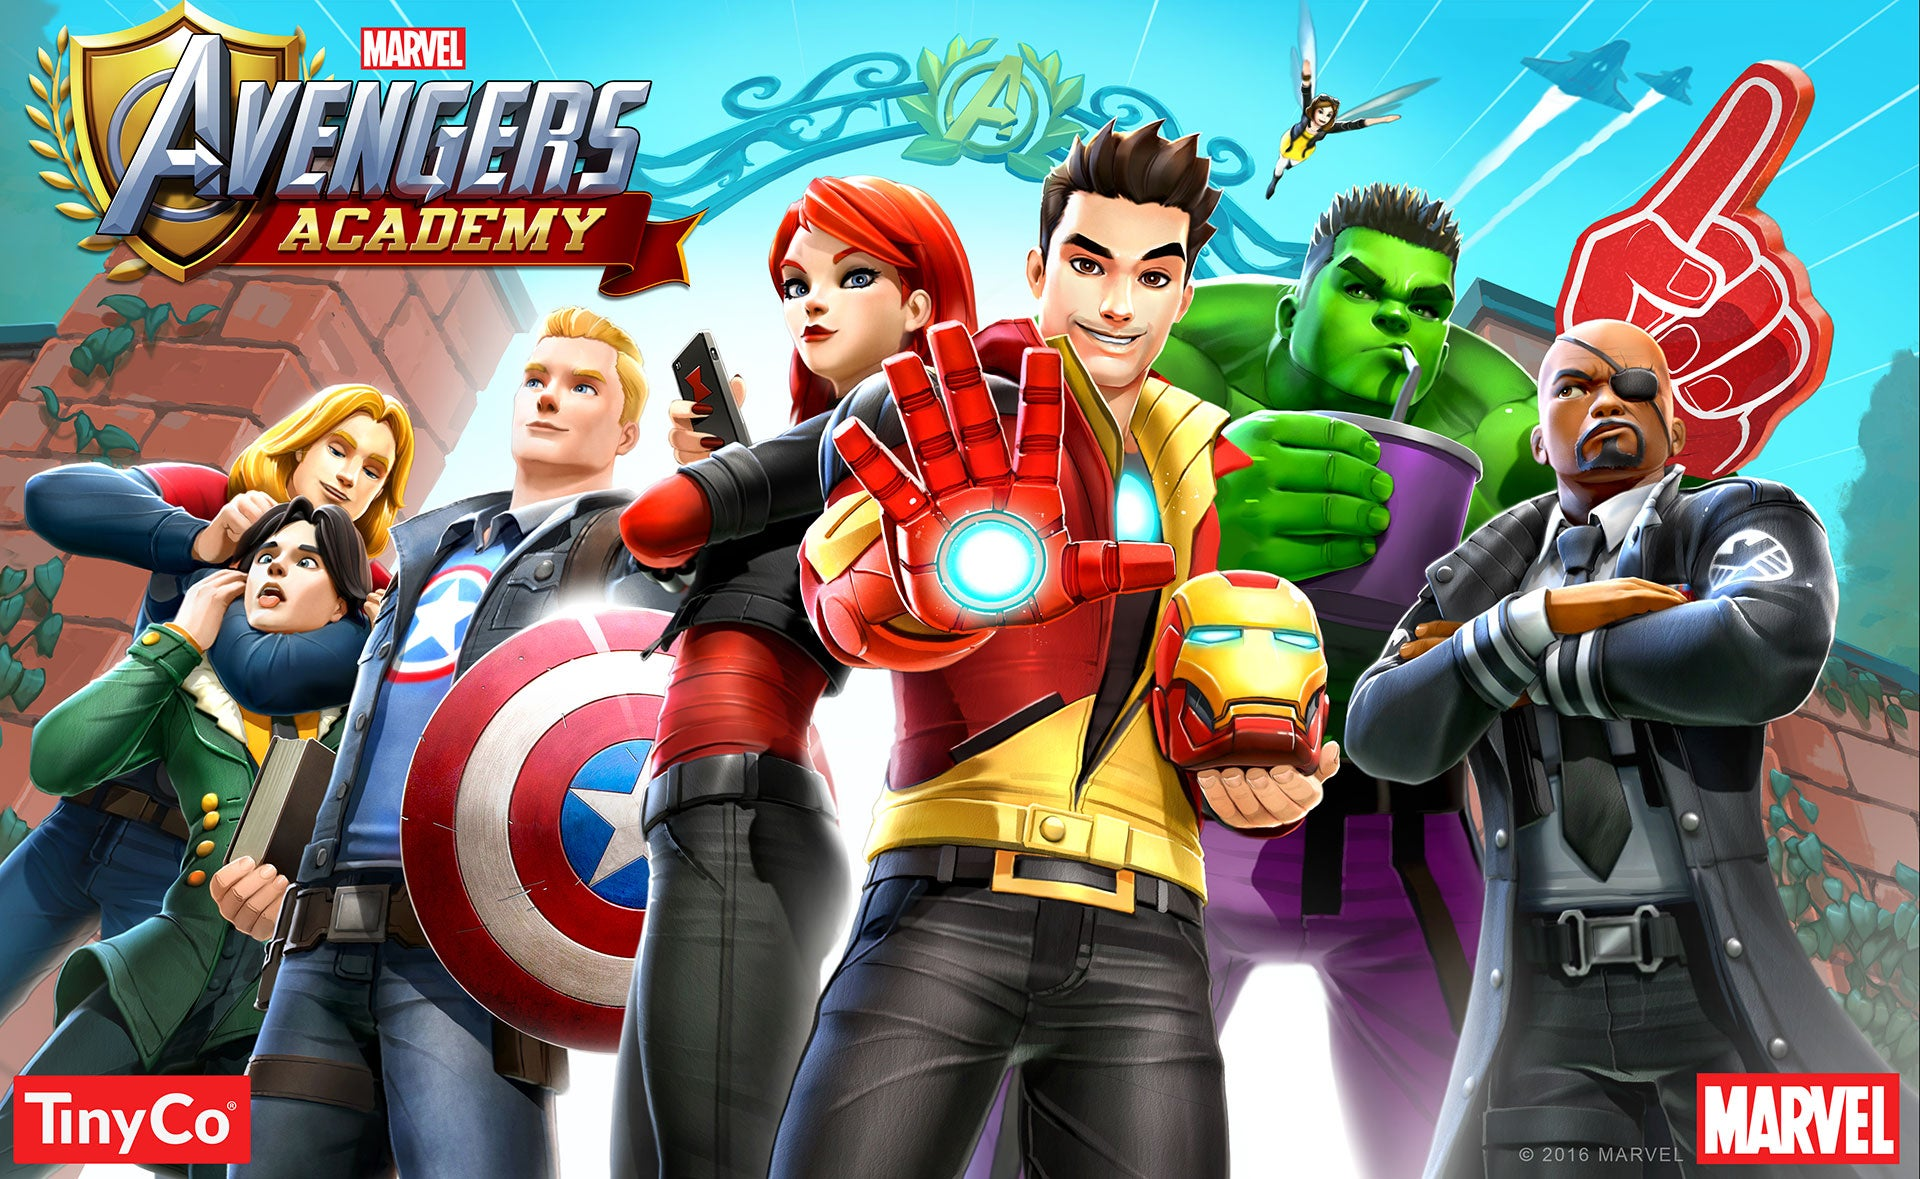 Marvel's Latest Avengers Game Is Such A Shame